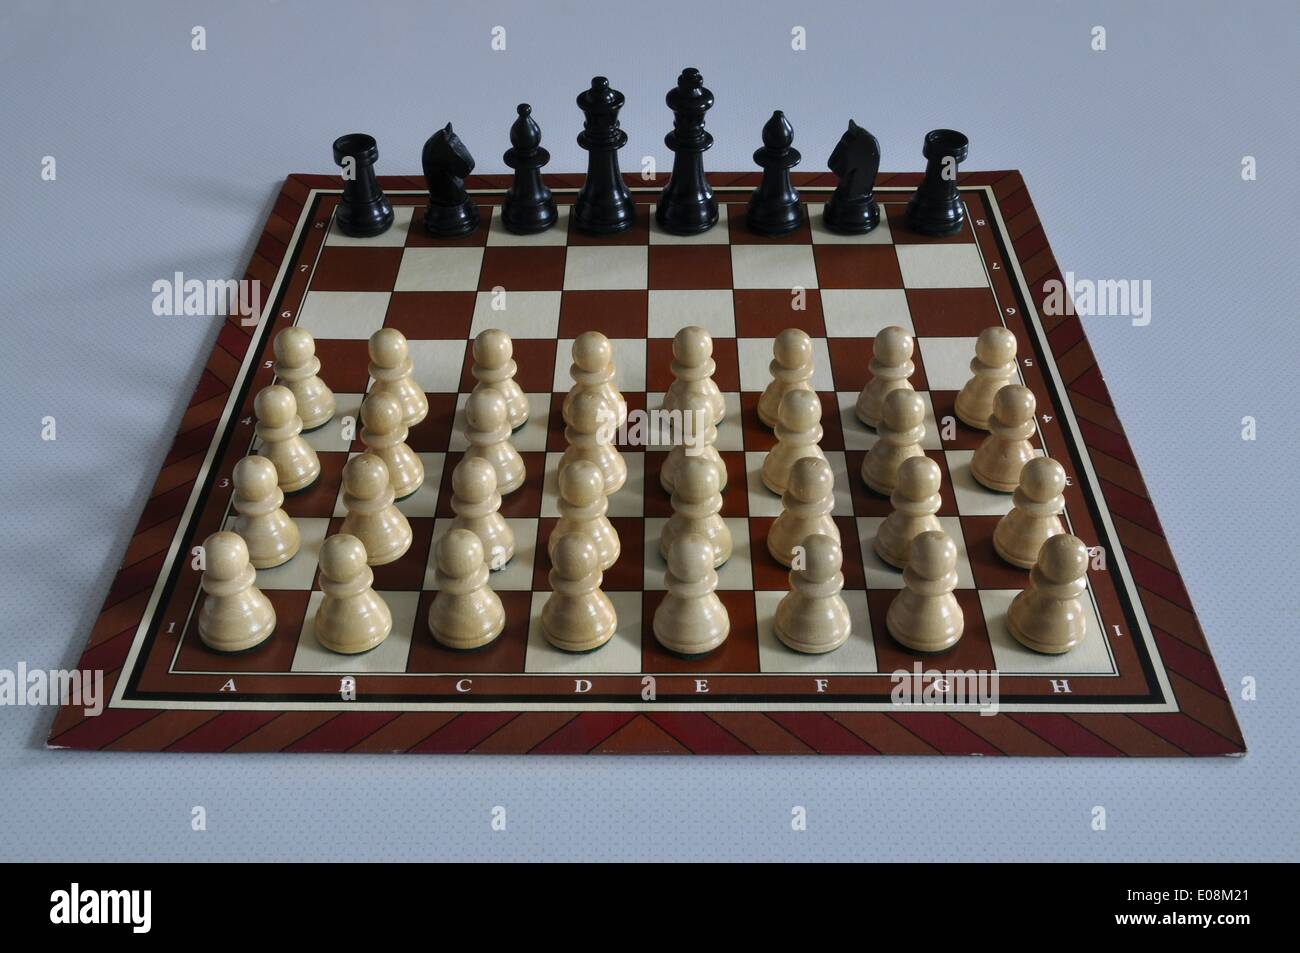 Illustration - Chess pieces stand on a chessboard in Germany, 16 January 2013. Many white pawns face a black king, Stock Photo